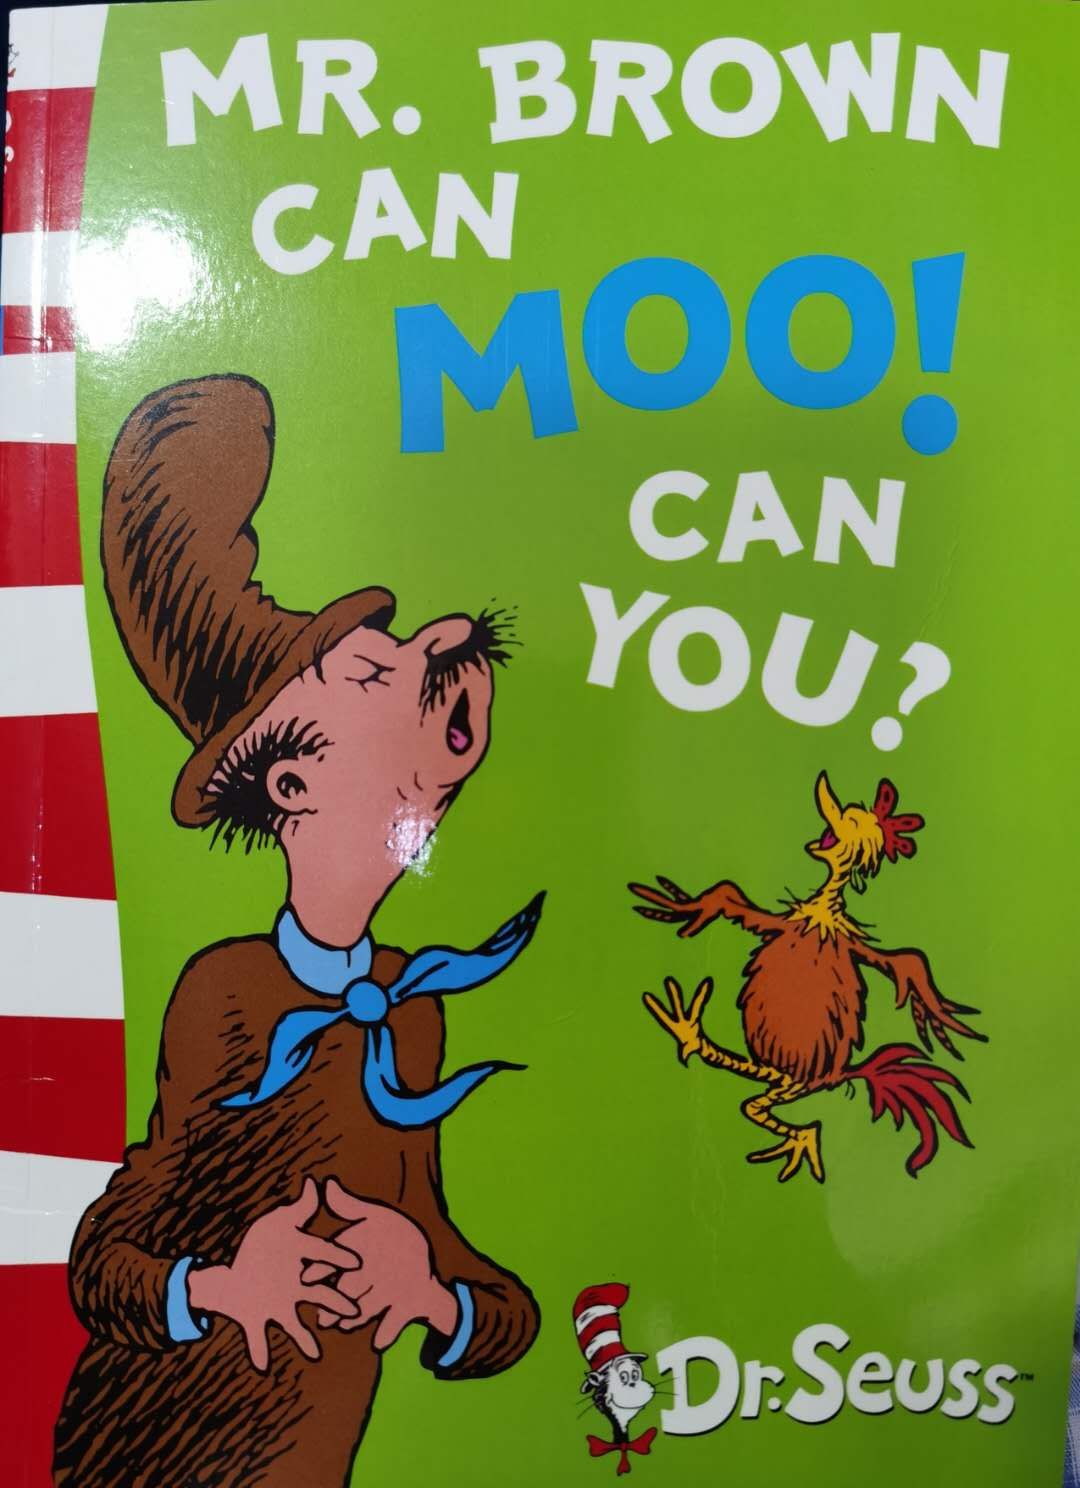 52 20 21 Mr Brown Can Moo Can You